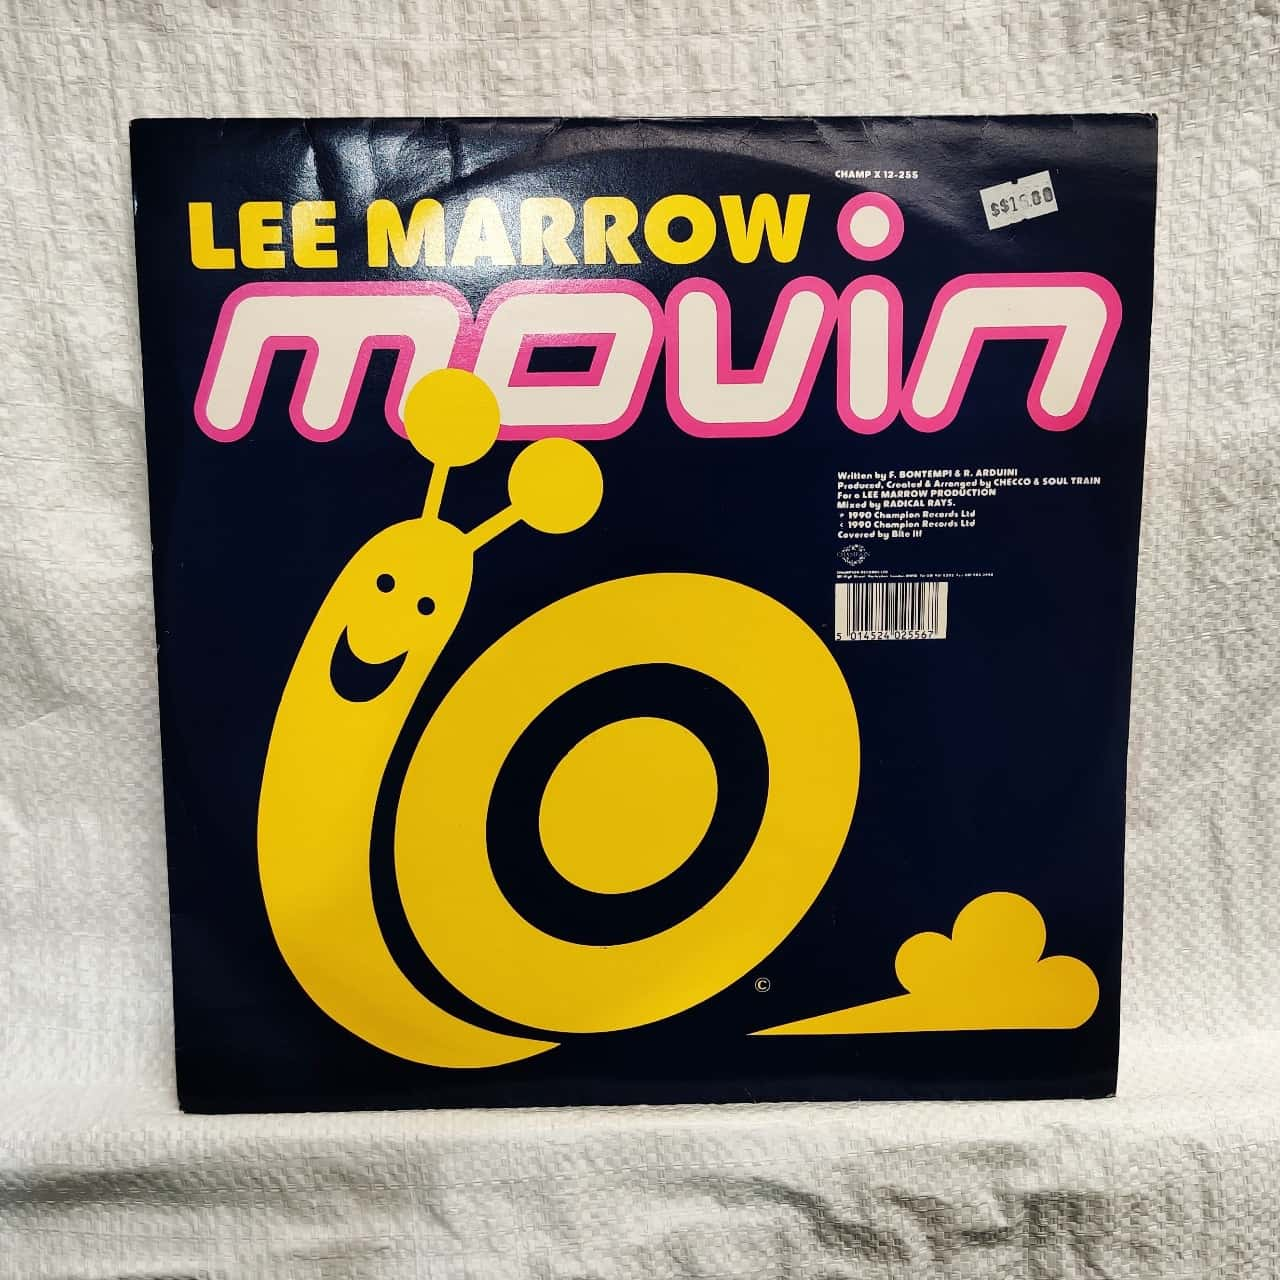 Vinyl Album - Lee Marrow - Movin